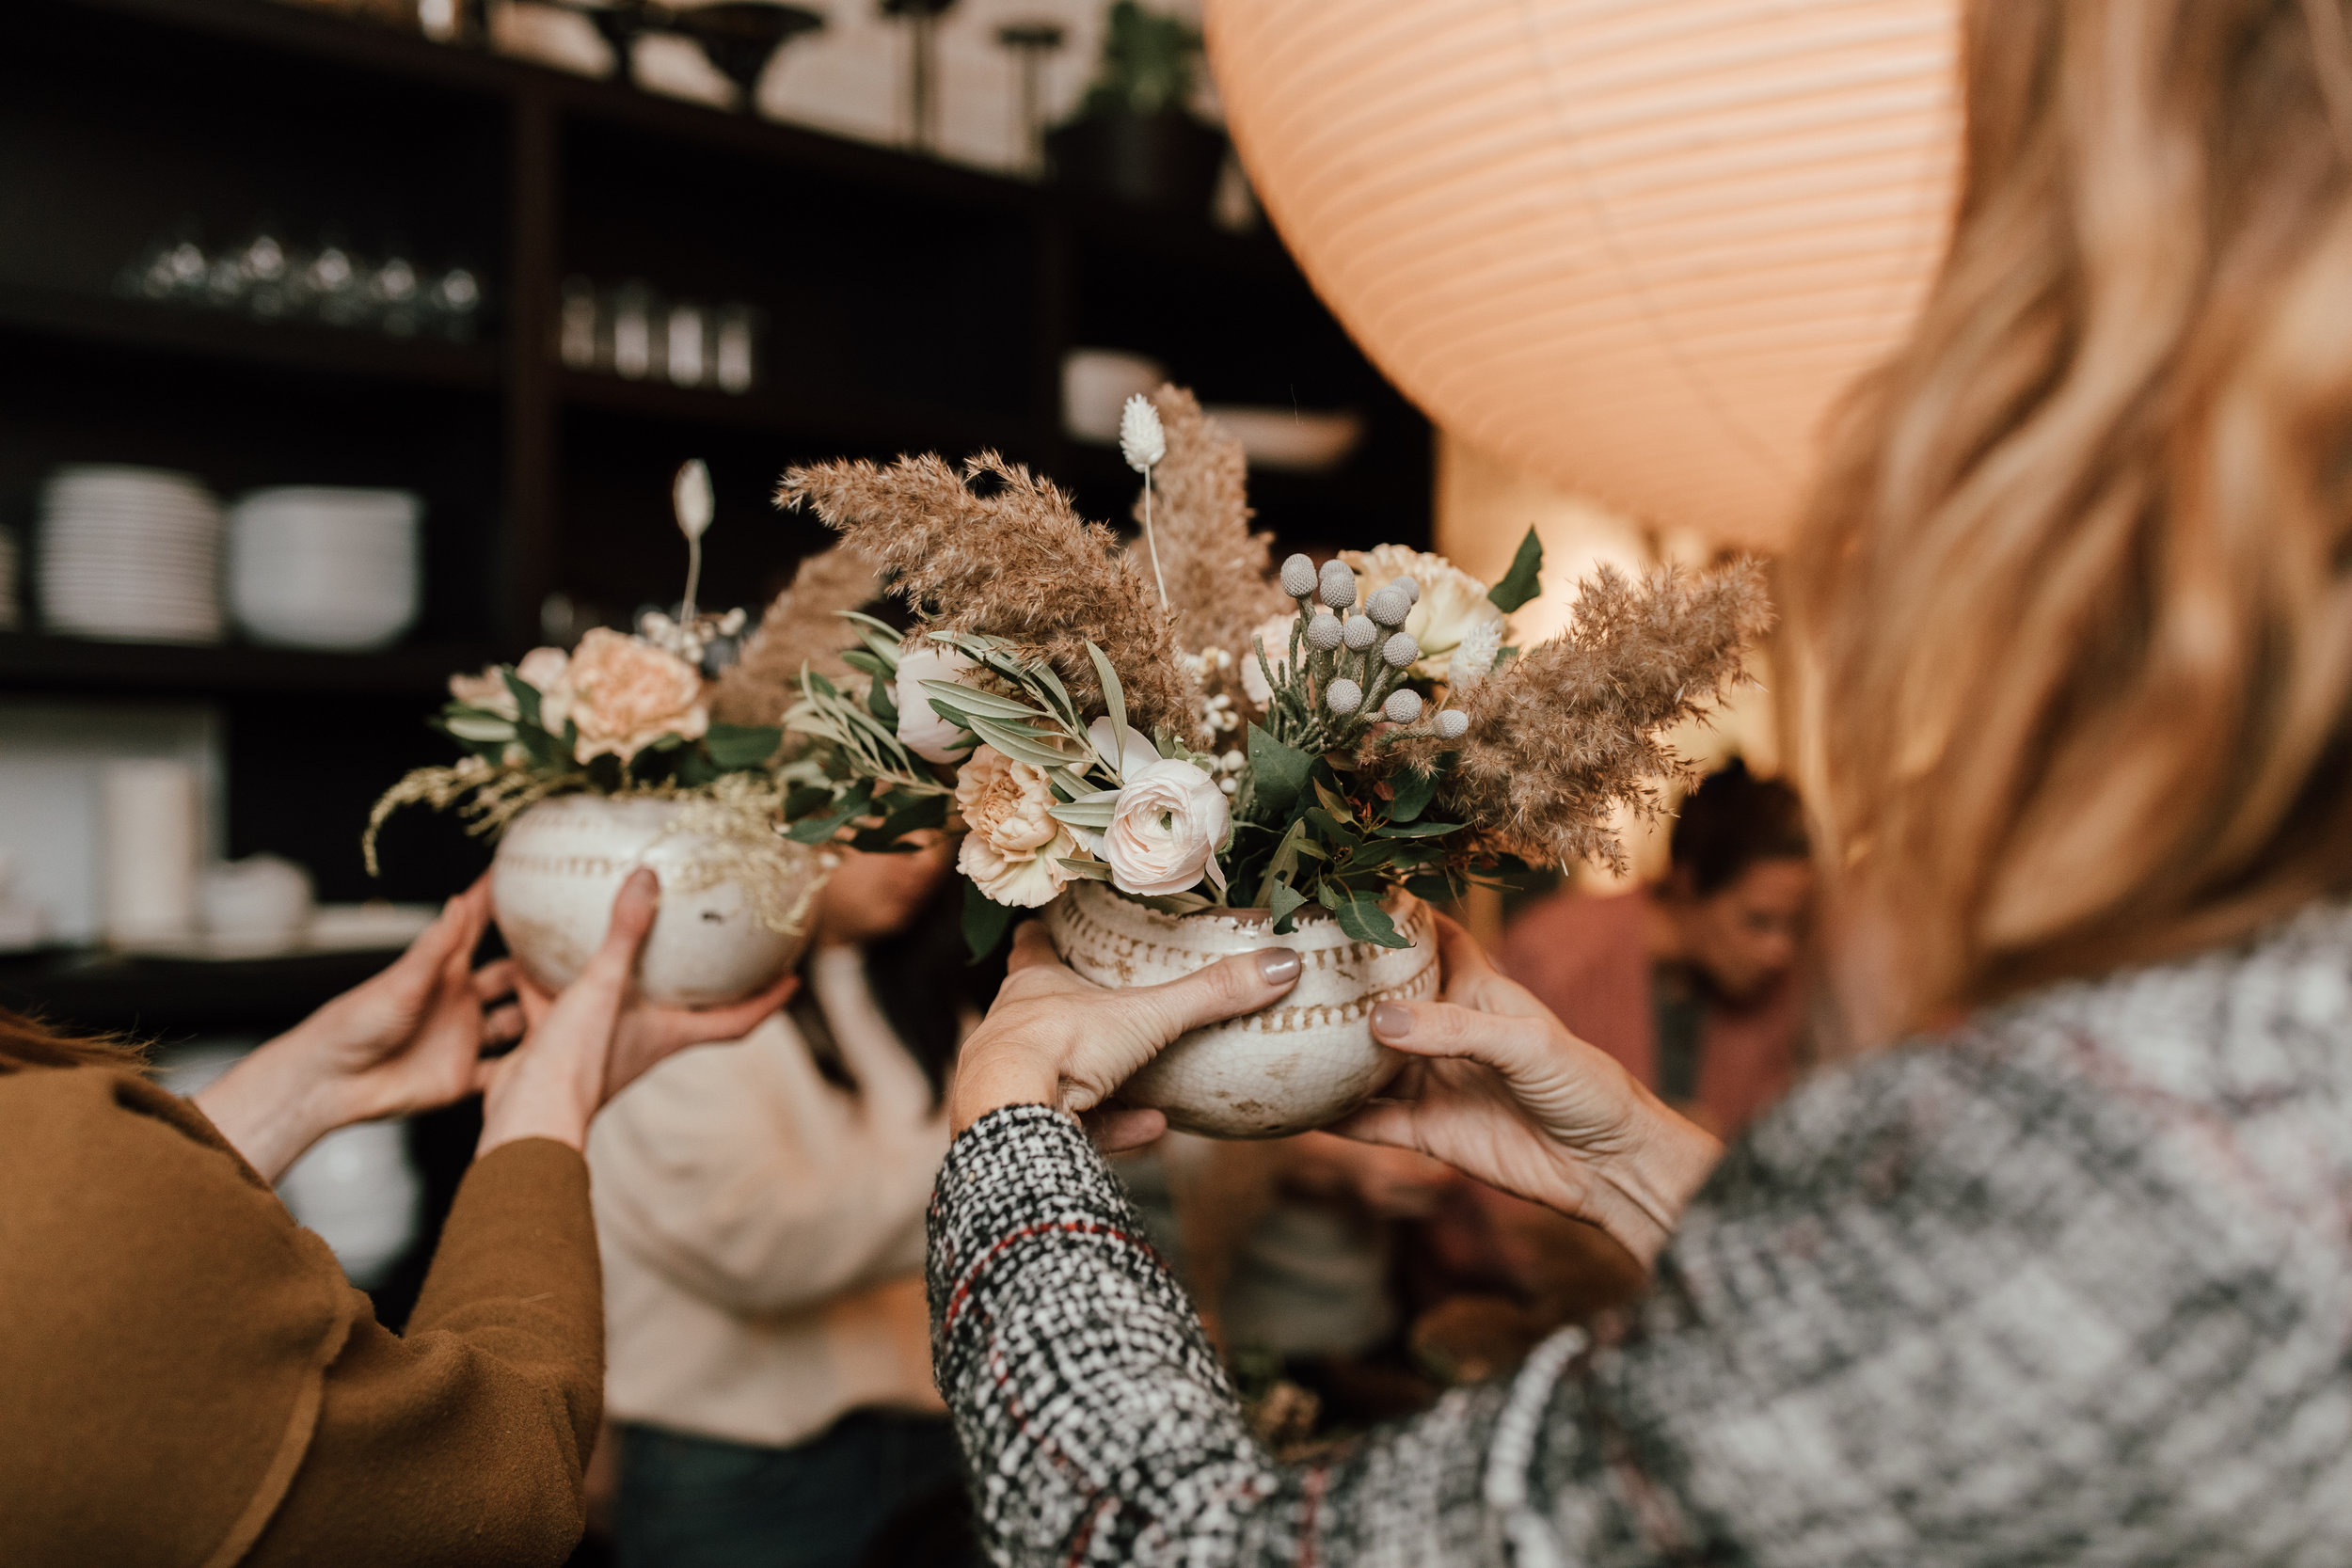 WORKSHOPS & EVENTS - Ferox Studio offers a range of public and private workshops focusing on garden and floral design. Click here to learn more!